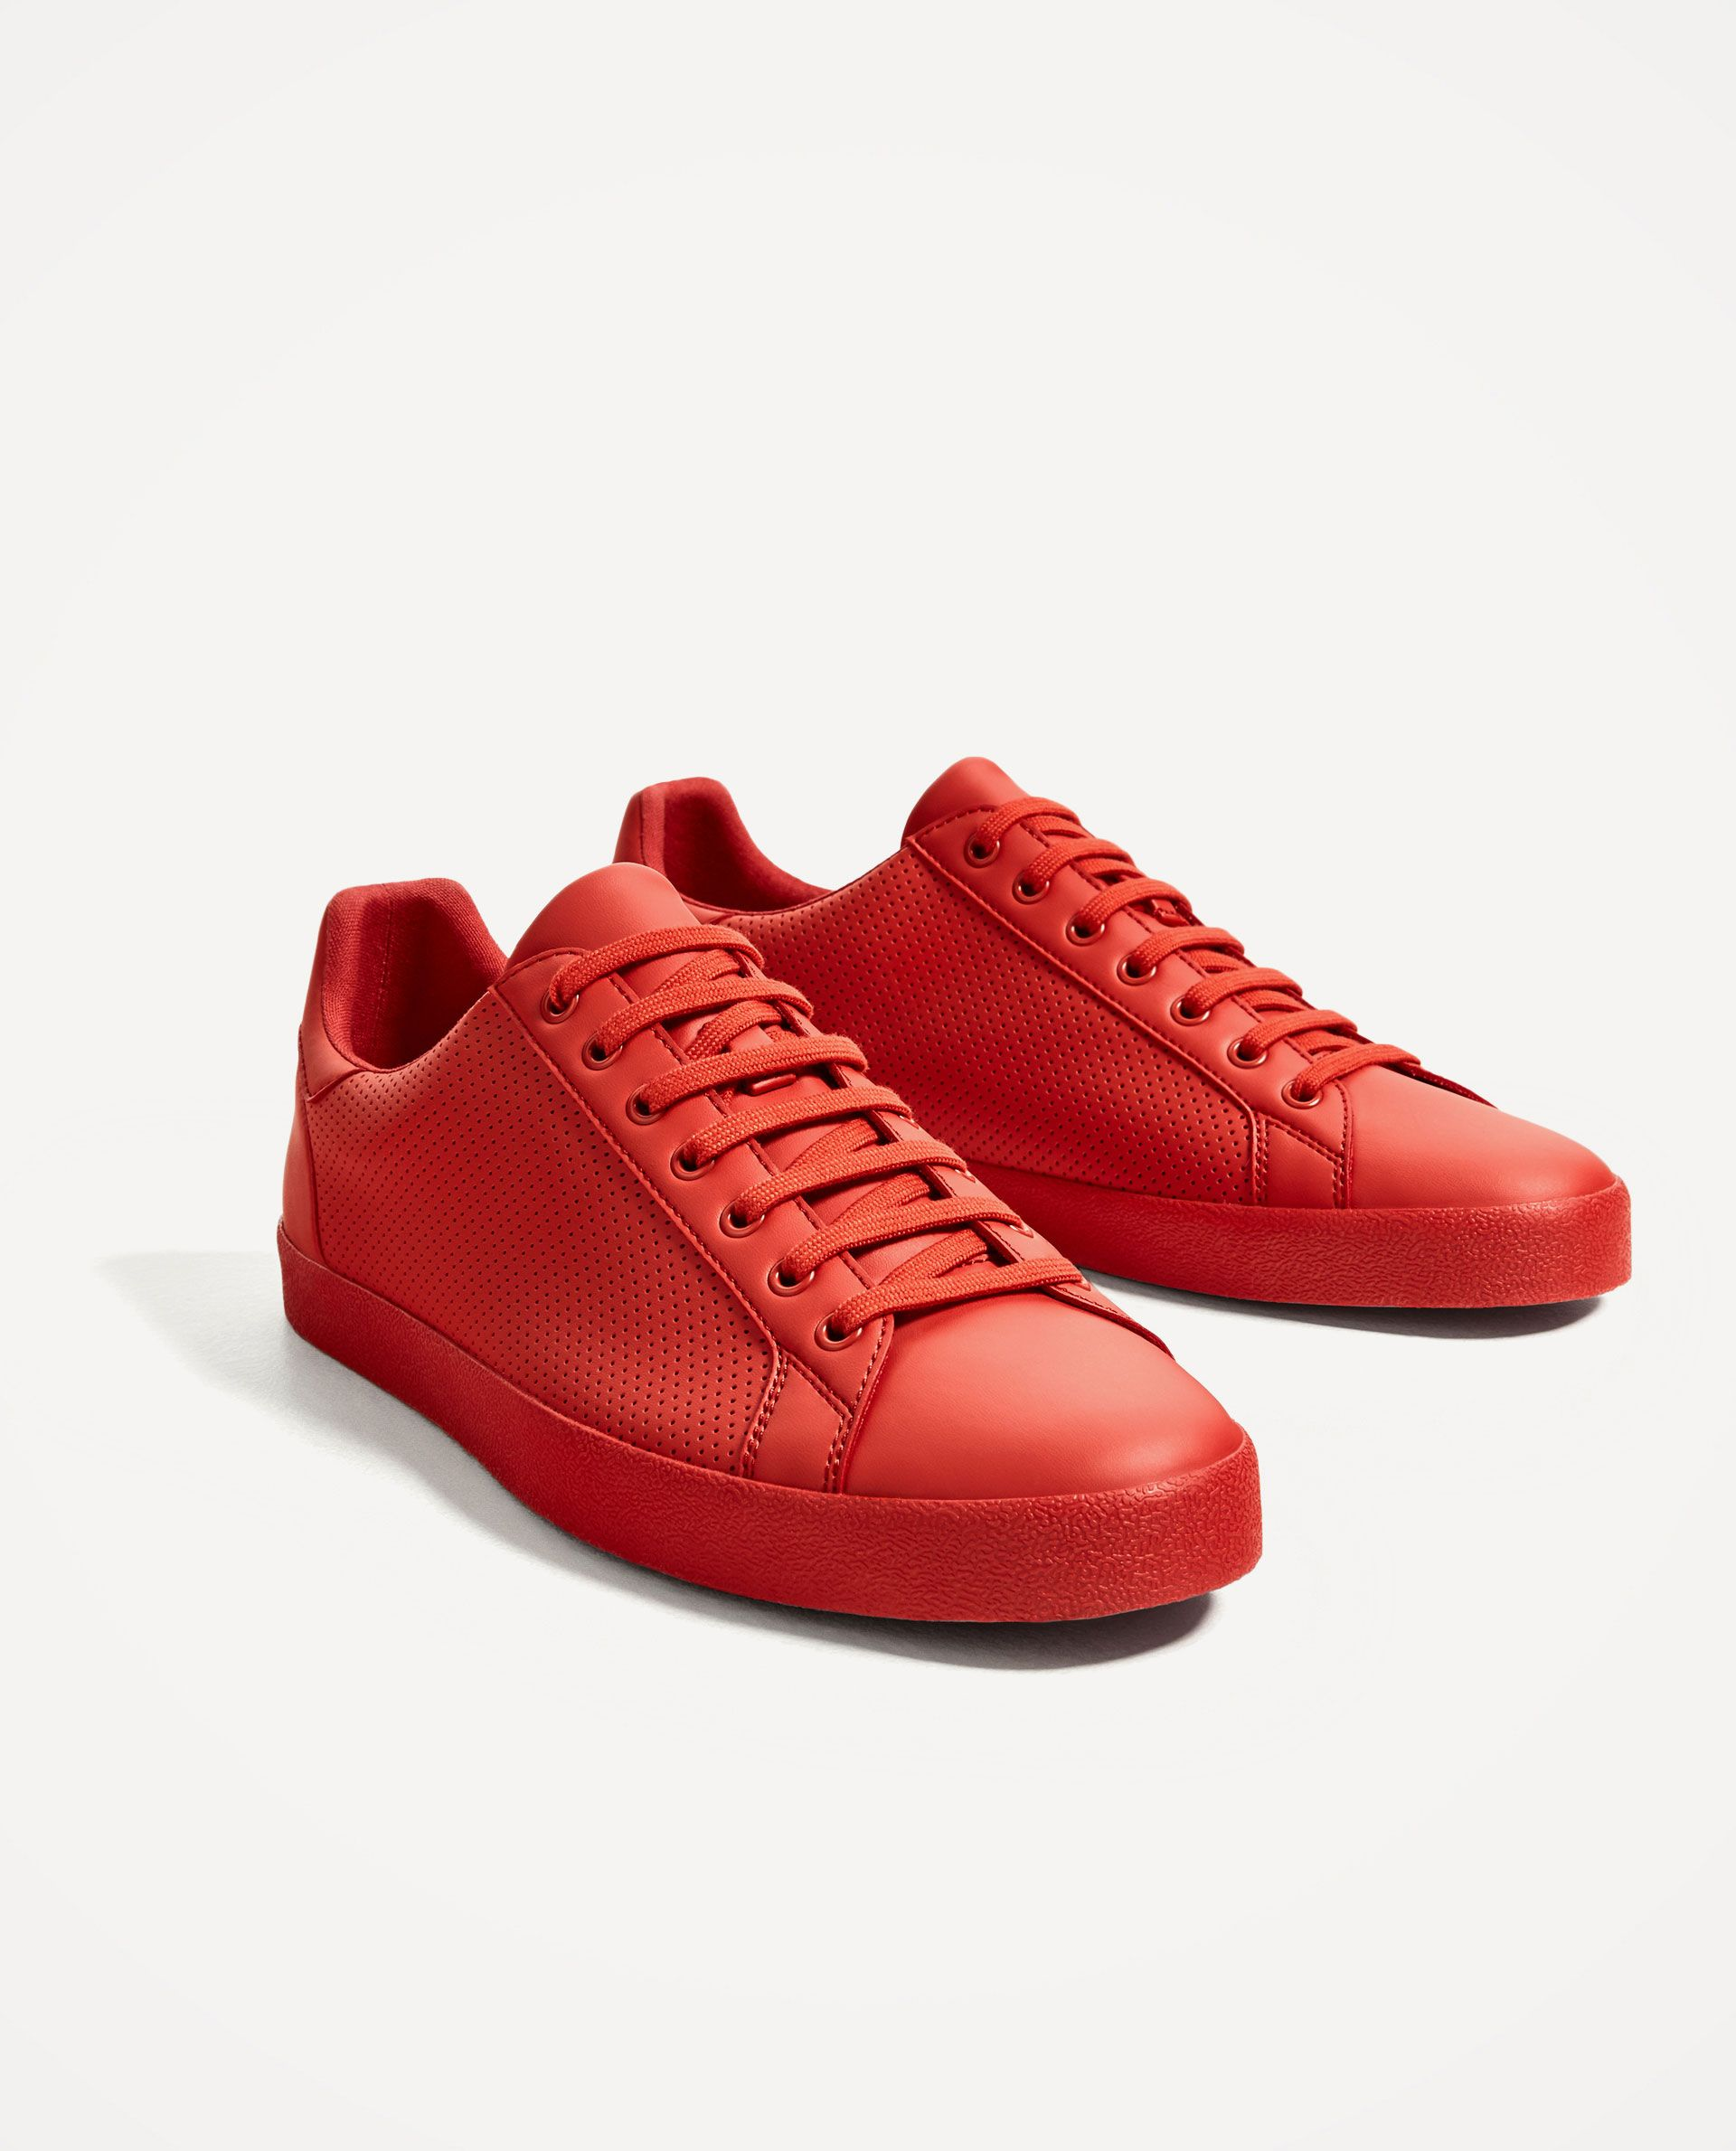 37f50eac4 RED PERFORATED PLIMSOLLS | FASHION & STYLE in 2019 | Mens red shoes ...